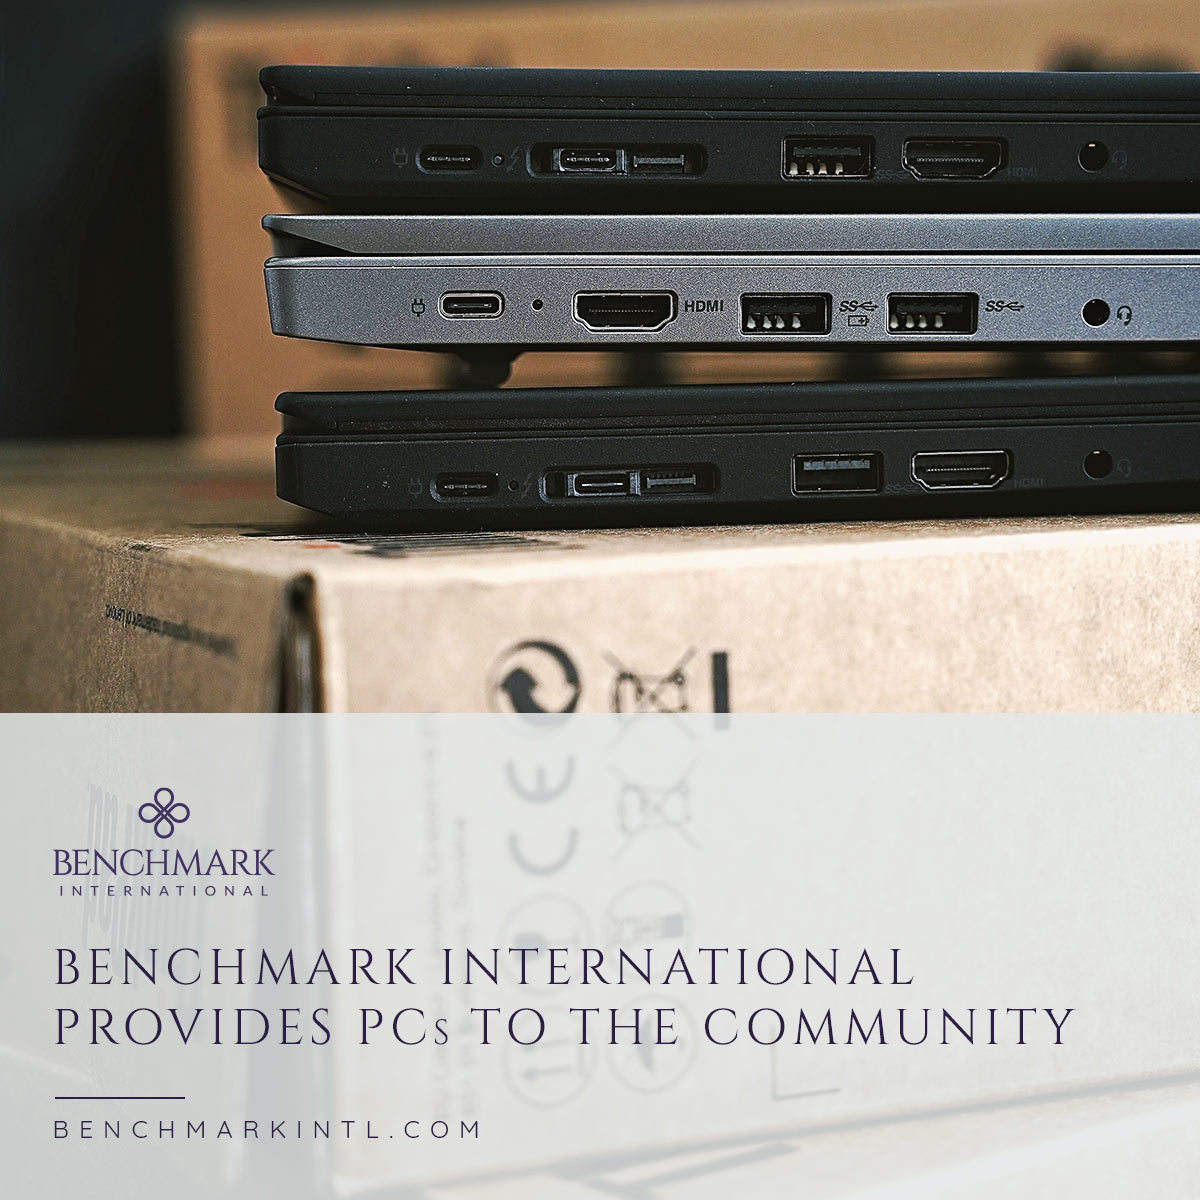 Benchmark International provides PCs to community with PCRefurb and Lantec